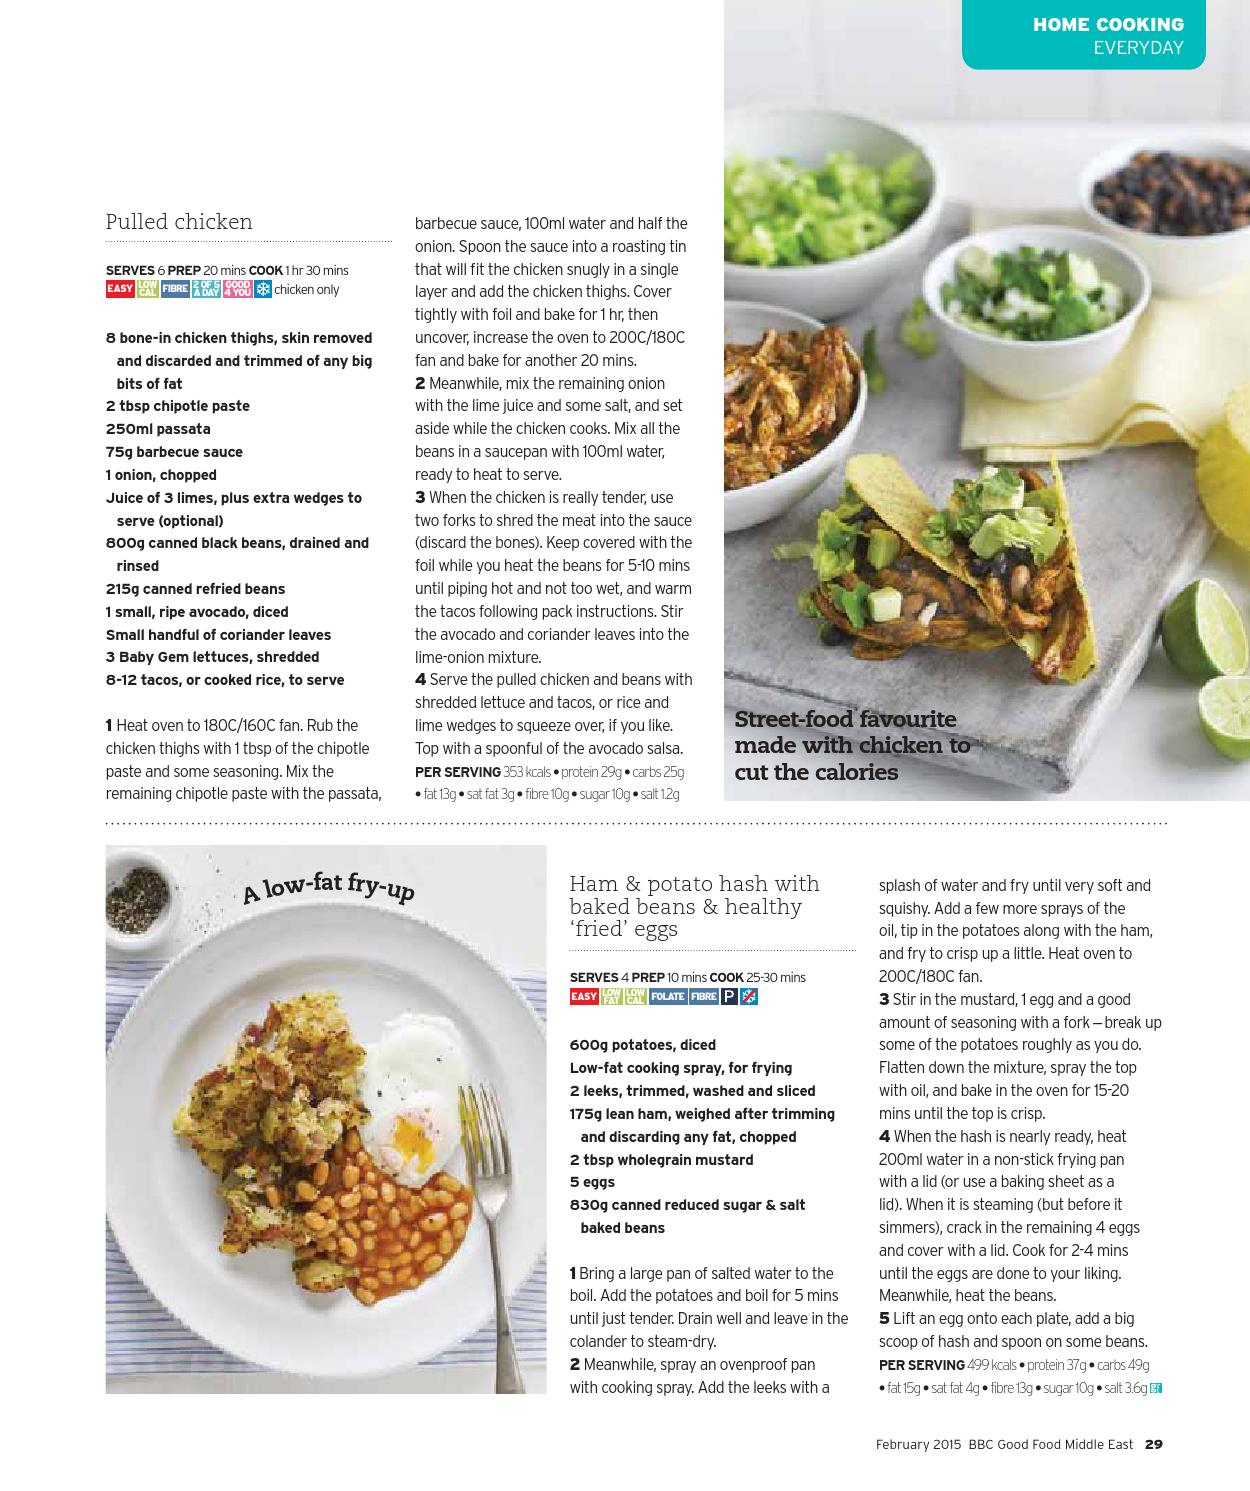 Bbc food recipes chicken thighs rosemary roast chicken thighs new bbc good food me 2015 february by bbc good food me issuu forumfinder Images